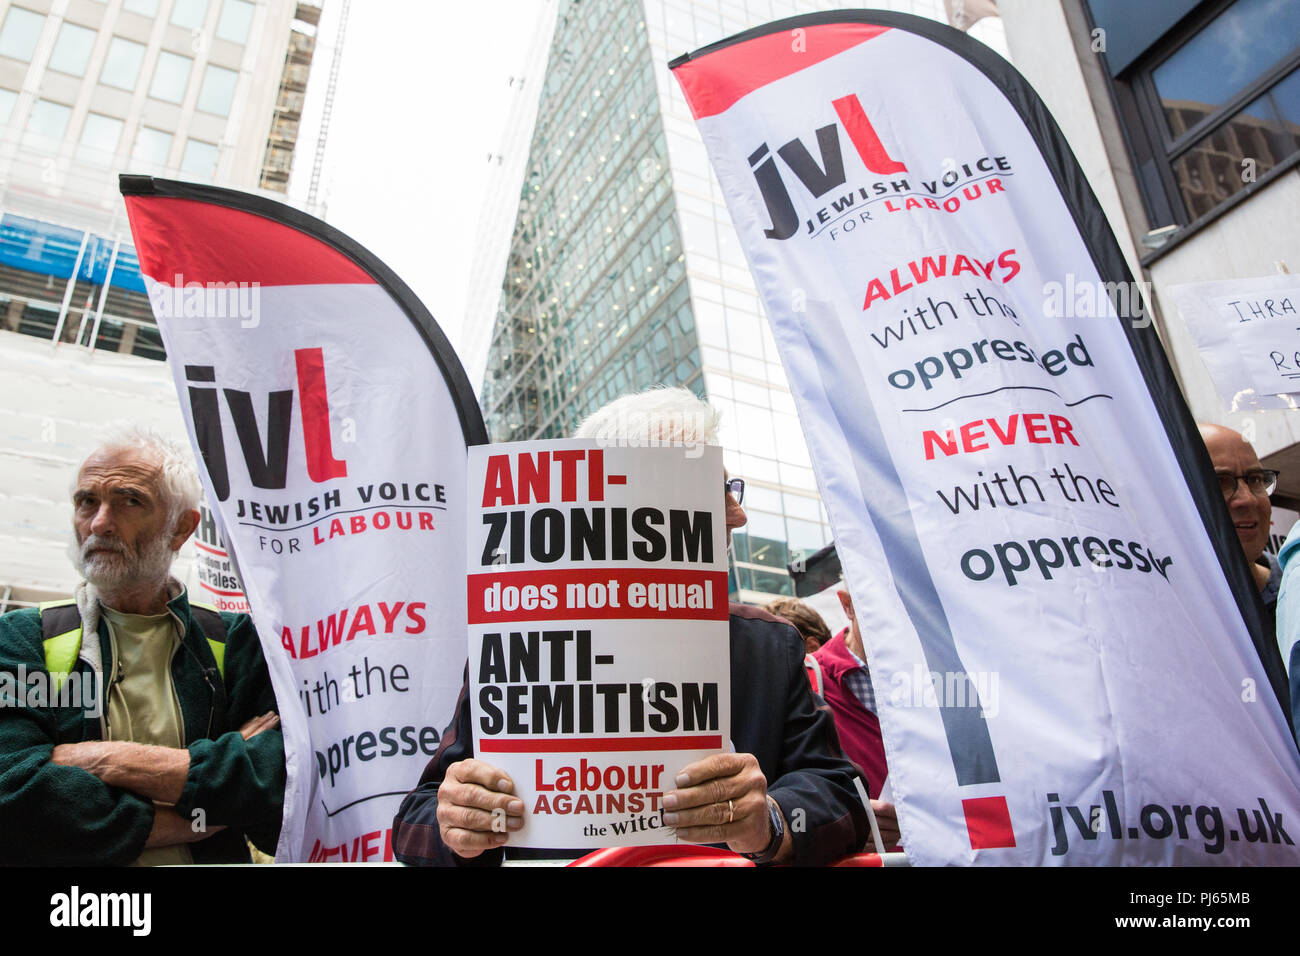 London, UK. 4th September, 2018. Supporters of Jeremy Corbyn from Jewish Voice for Labour, Momentum and other groups campaign outside the headquarters of the Labour Party on the day on which the party NEC was expected to adopt the IHRA definition and examples of anti-Semitism. Credit: Mark Kerrison/Alamy Live News - Stock Image